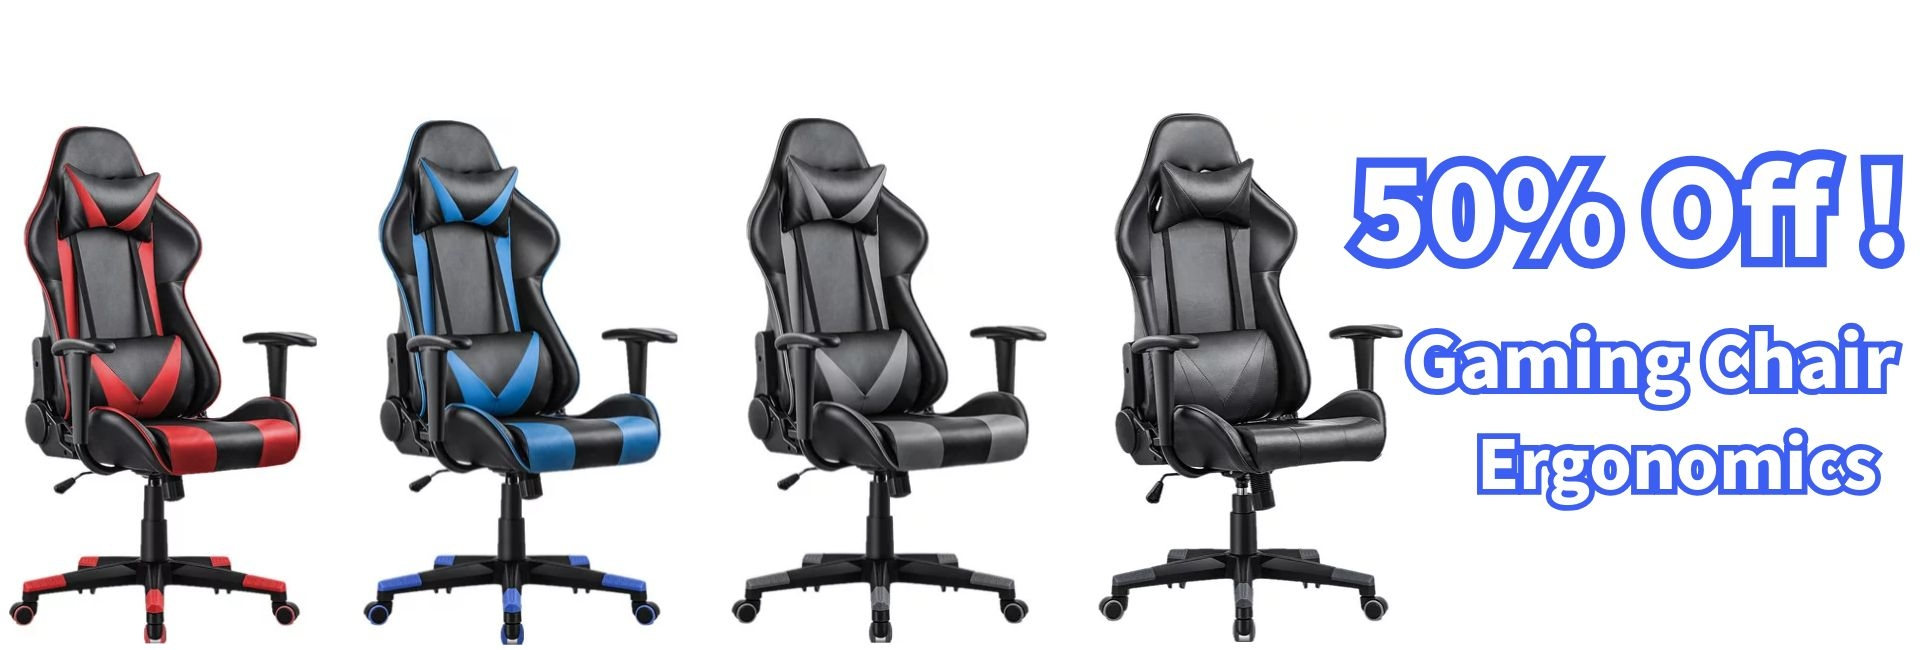 Gaming Chair Computer Desk Chair Racing Chairs Ergonomic